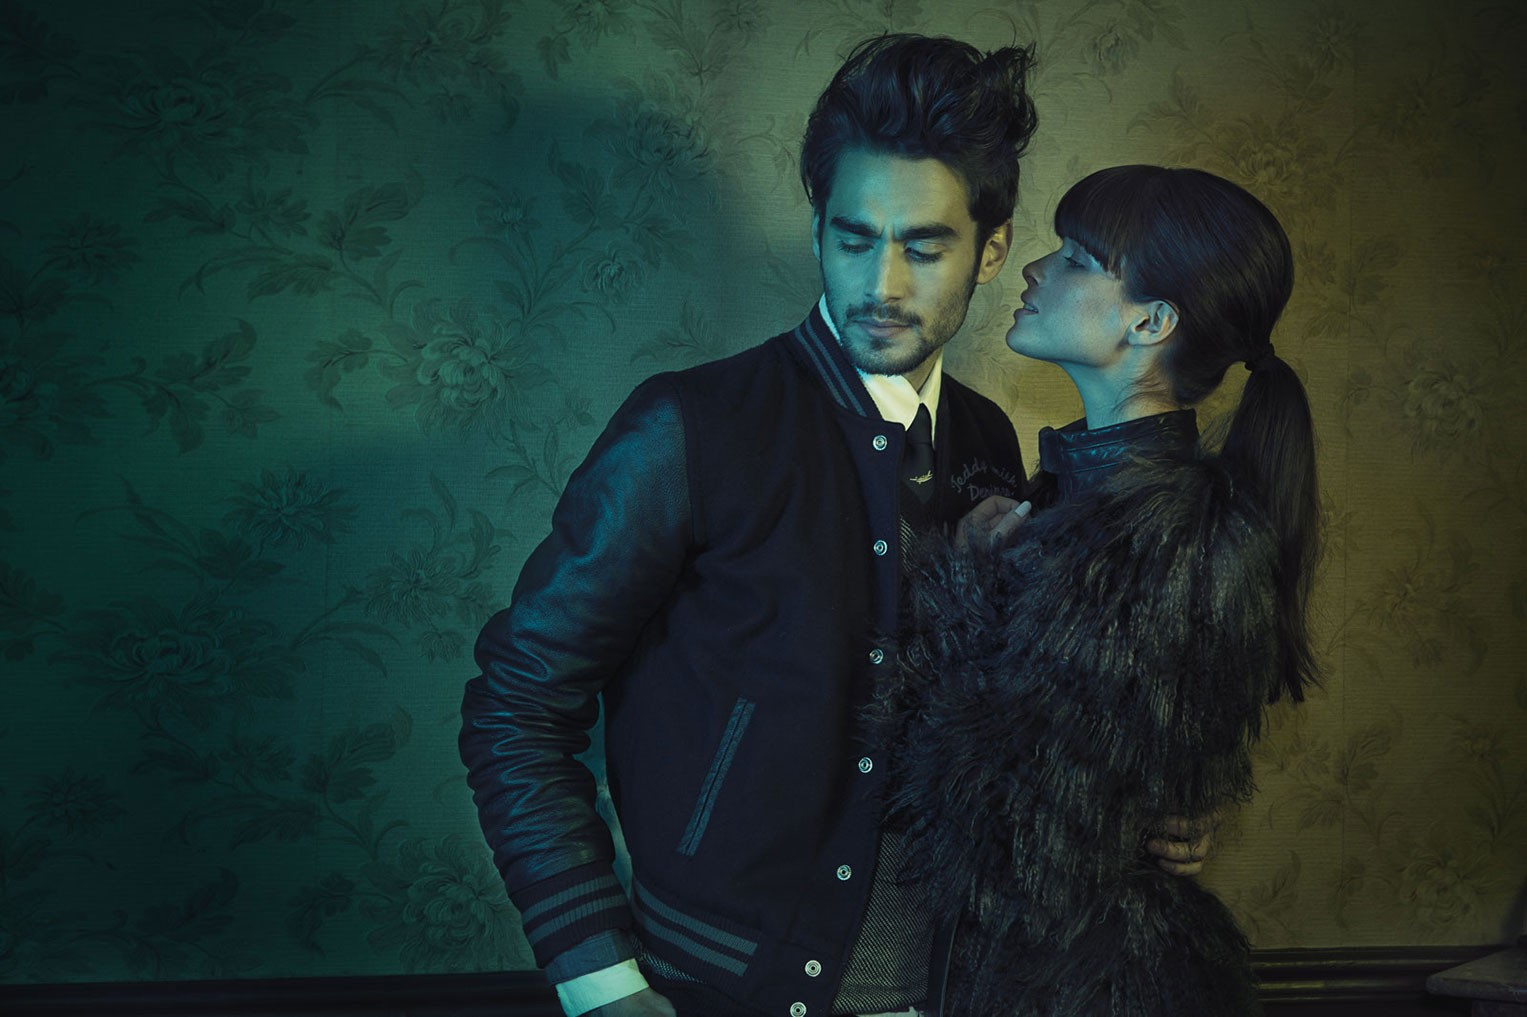 Chloe Francois & Nicolas Simoes by Lorent K & Oanell - The Runaways for Bambi Magazine